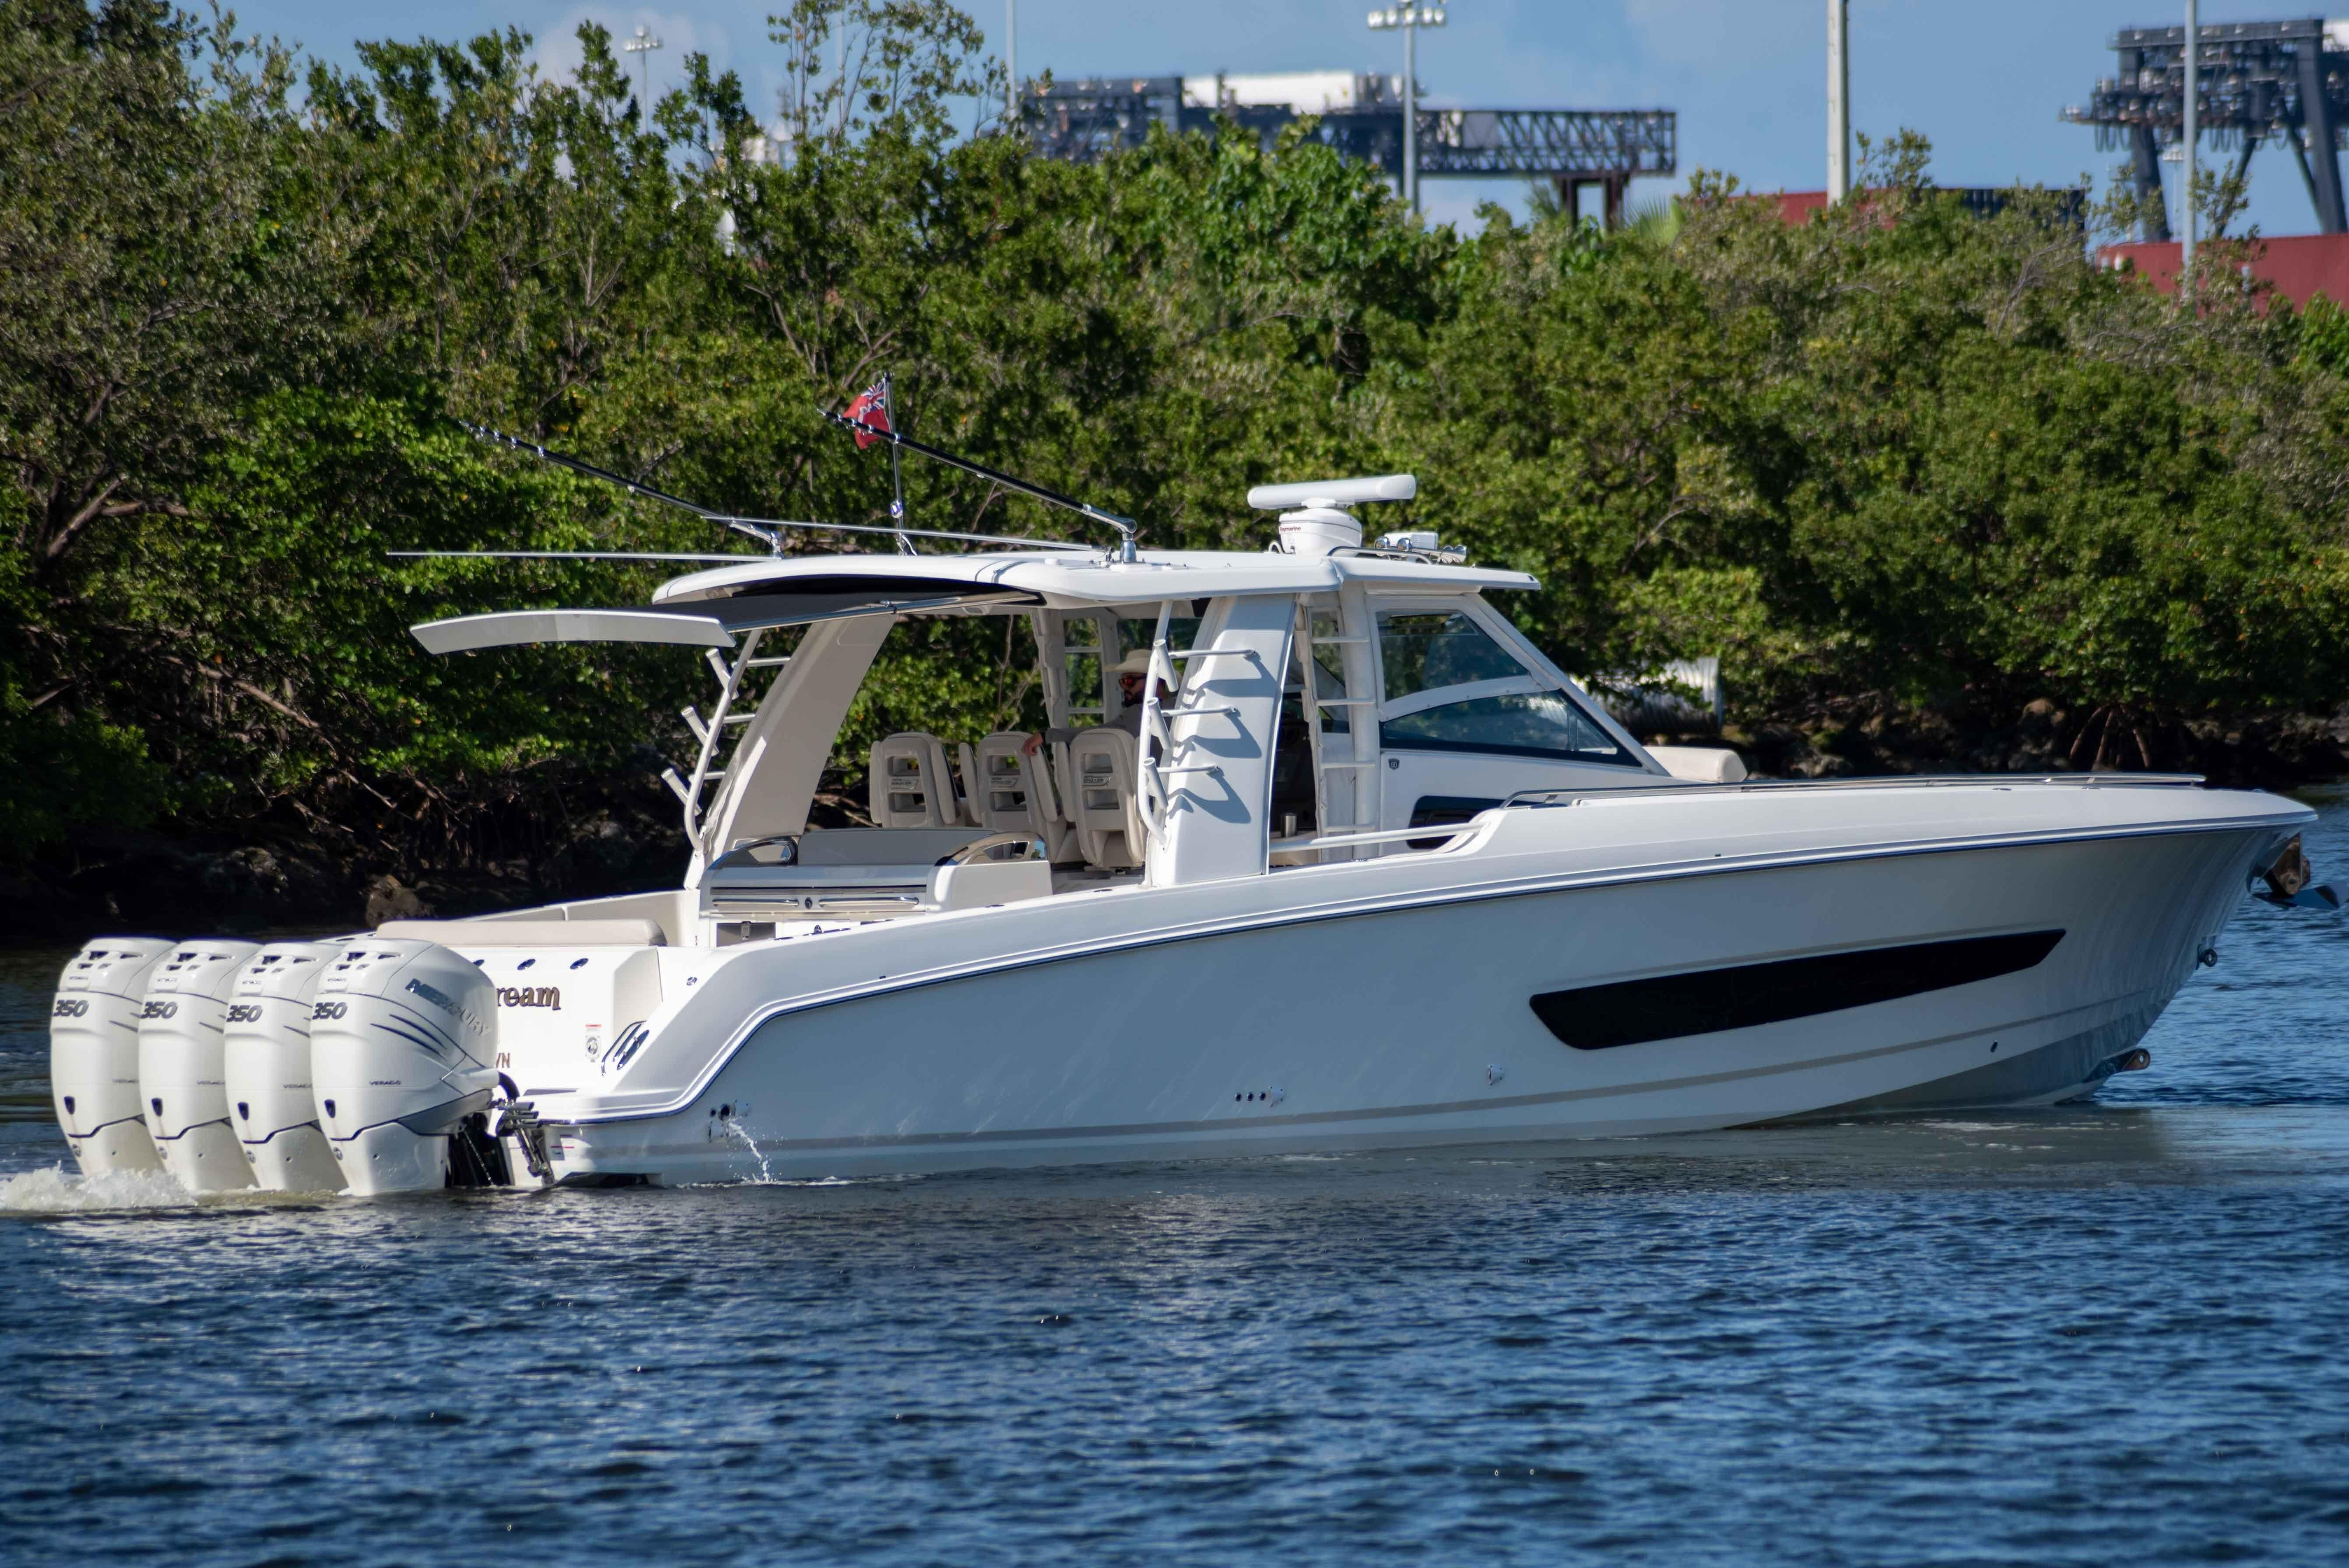 Boston Whaler Boats for Sale Ranging from $600,000 to